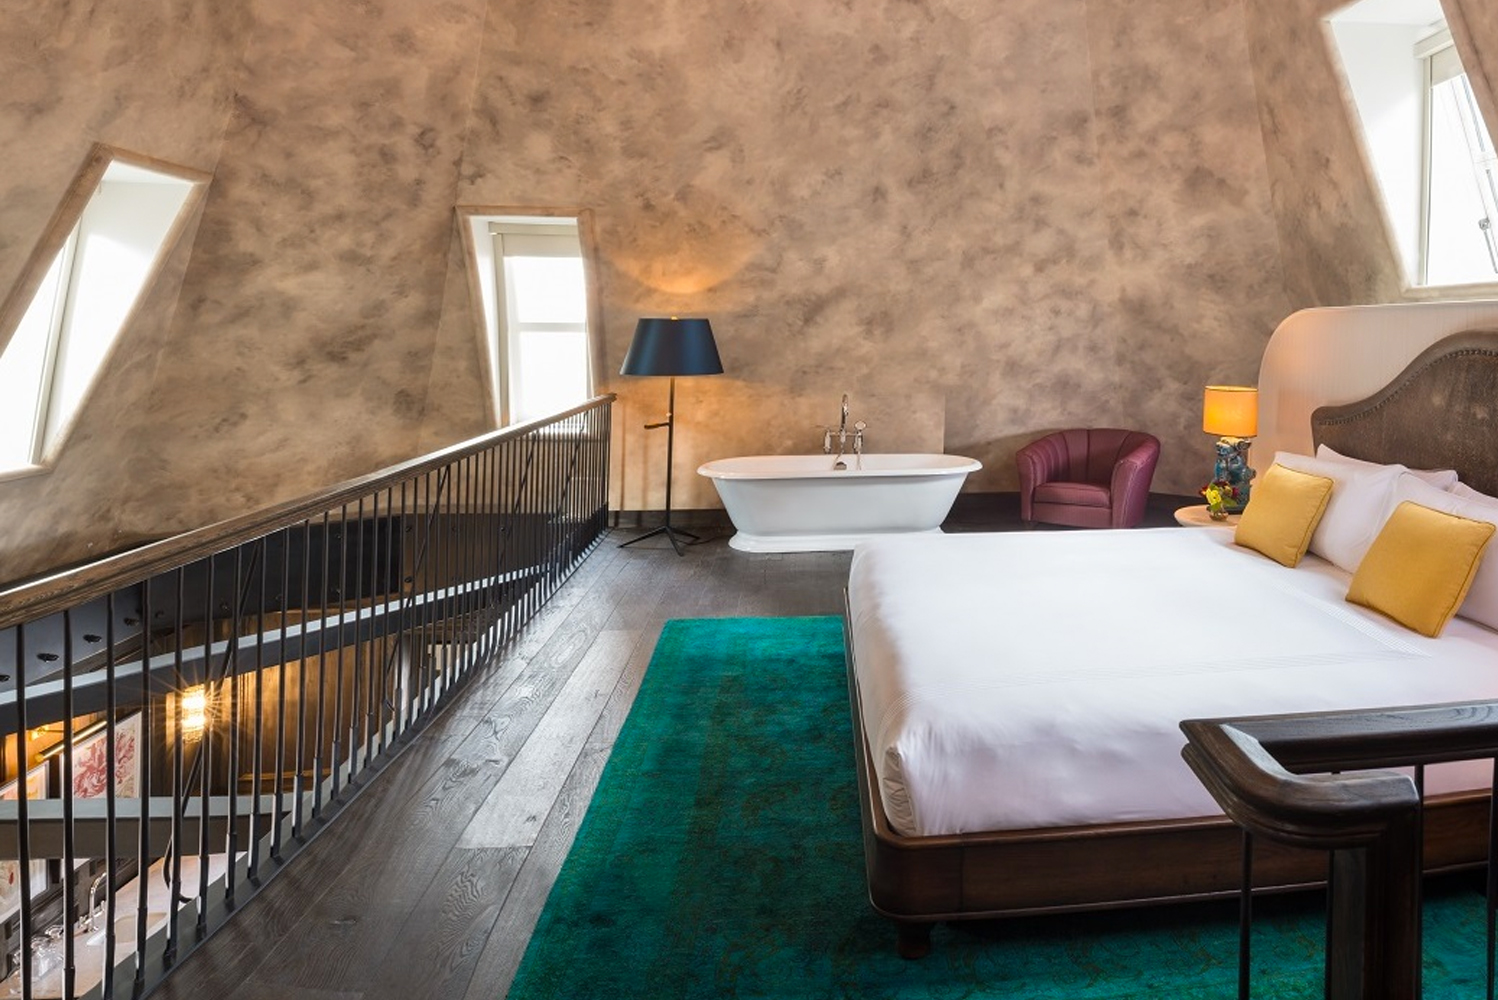 Beekman Hotel New York unveils renovated Turret Penthouse Suite